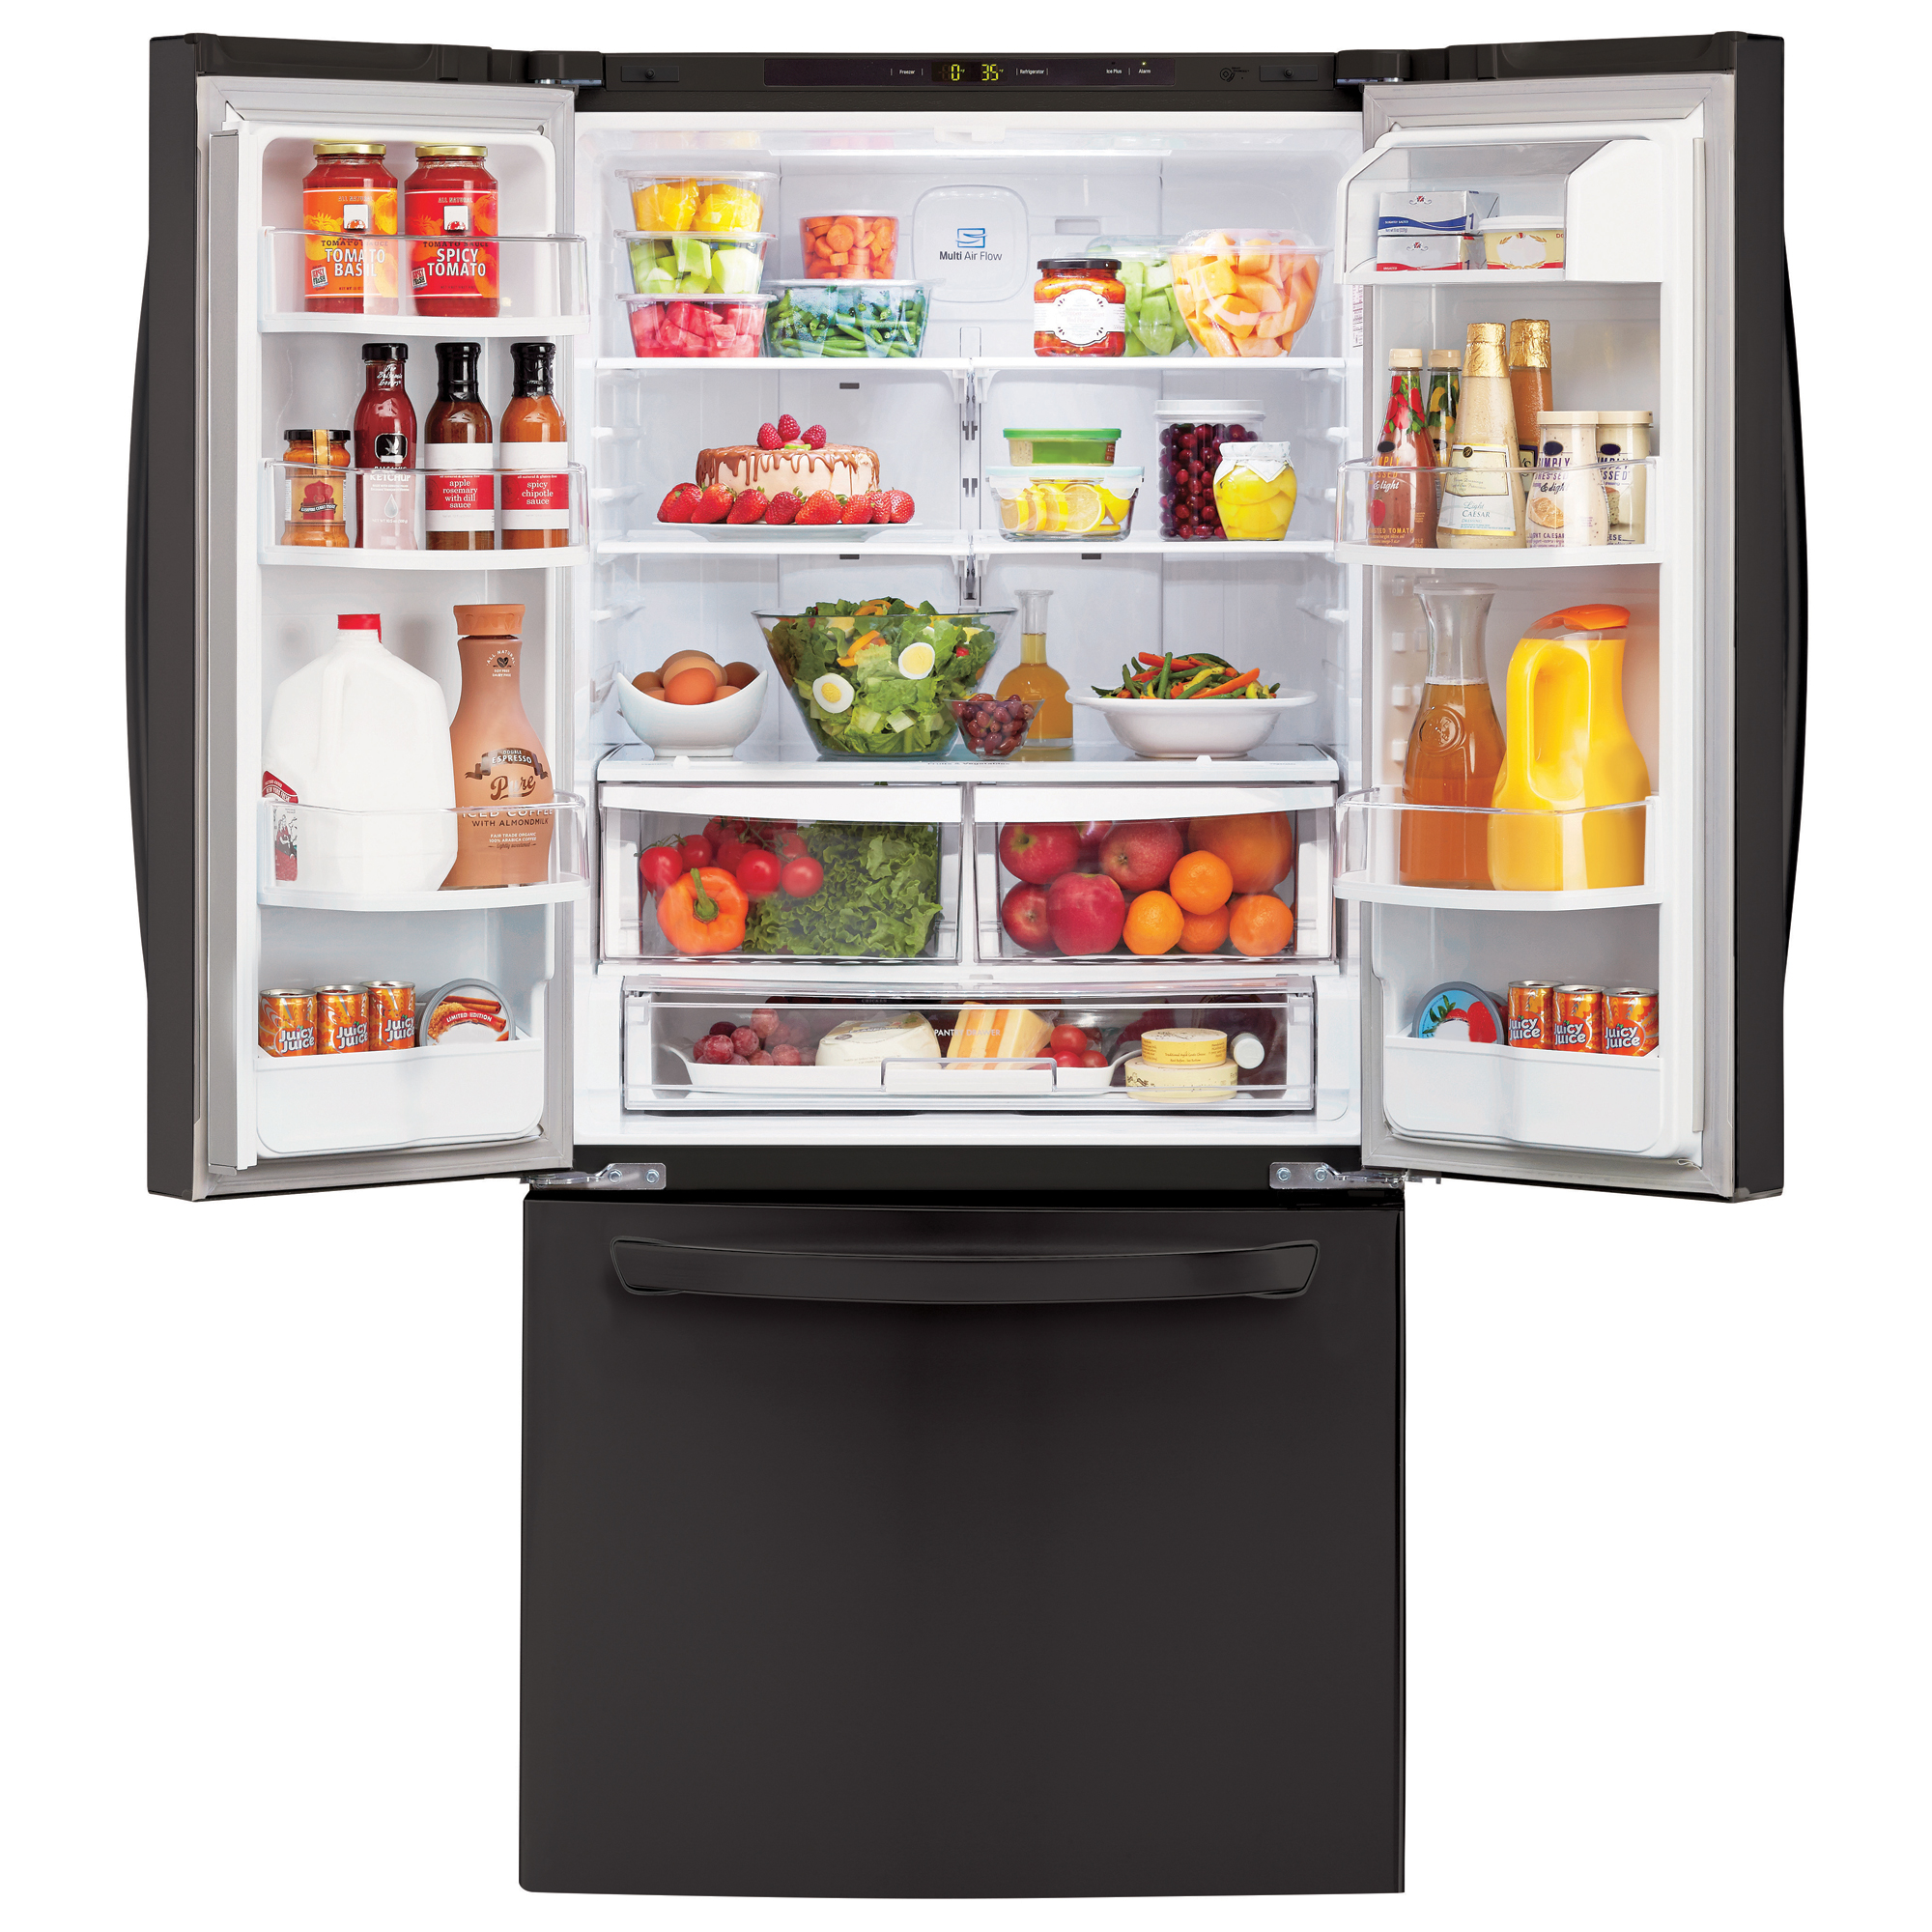 "LG LFC24770SB Super Capacity 23.6 cu.ft. French Door Refrigerator w/Smart Cooling (33"" Width)"